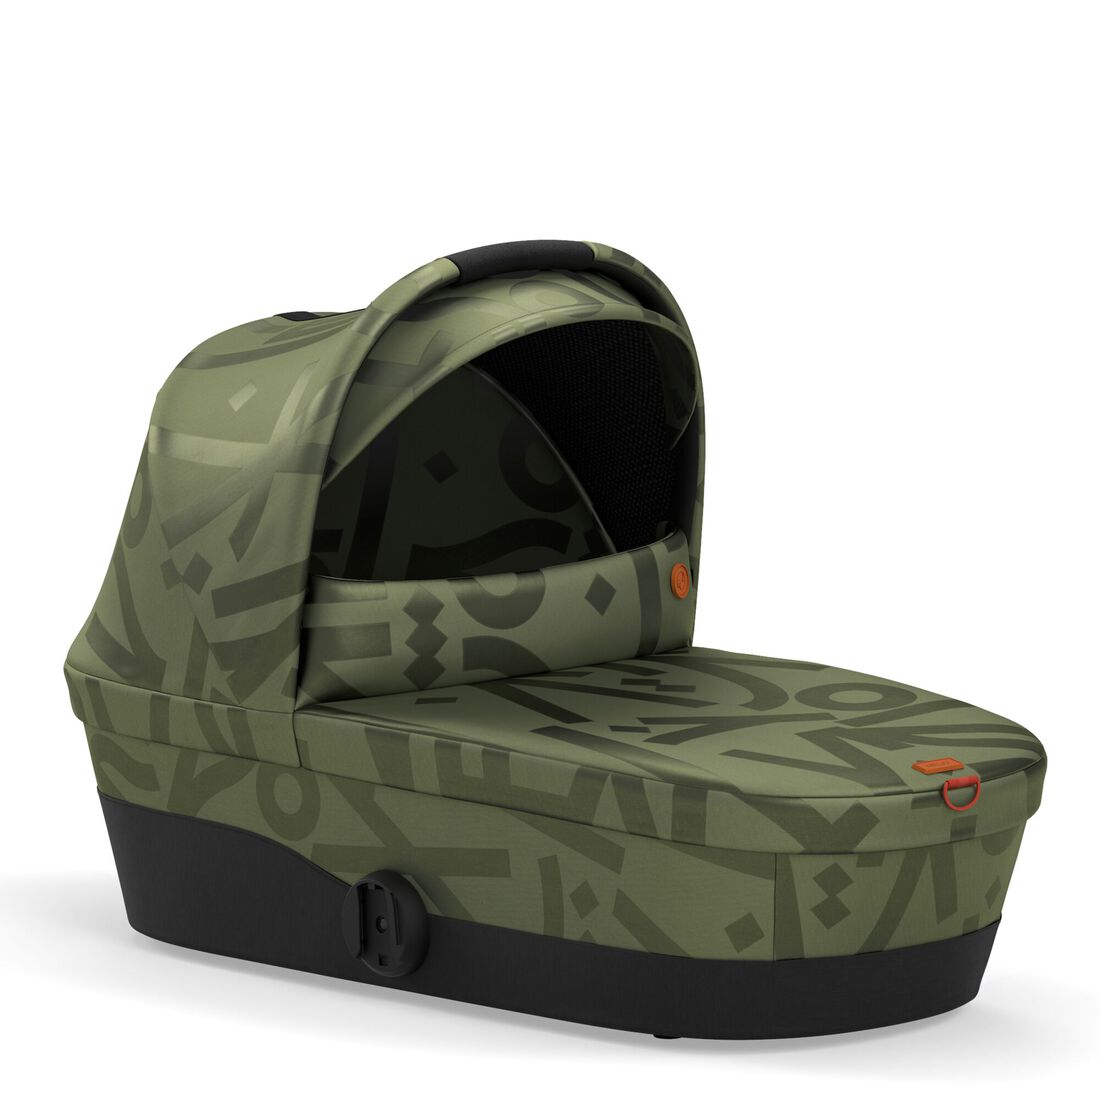 CYBEX Melio Cot - Olive Green in Olive Green large image number 2